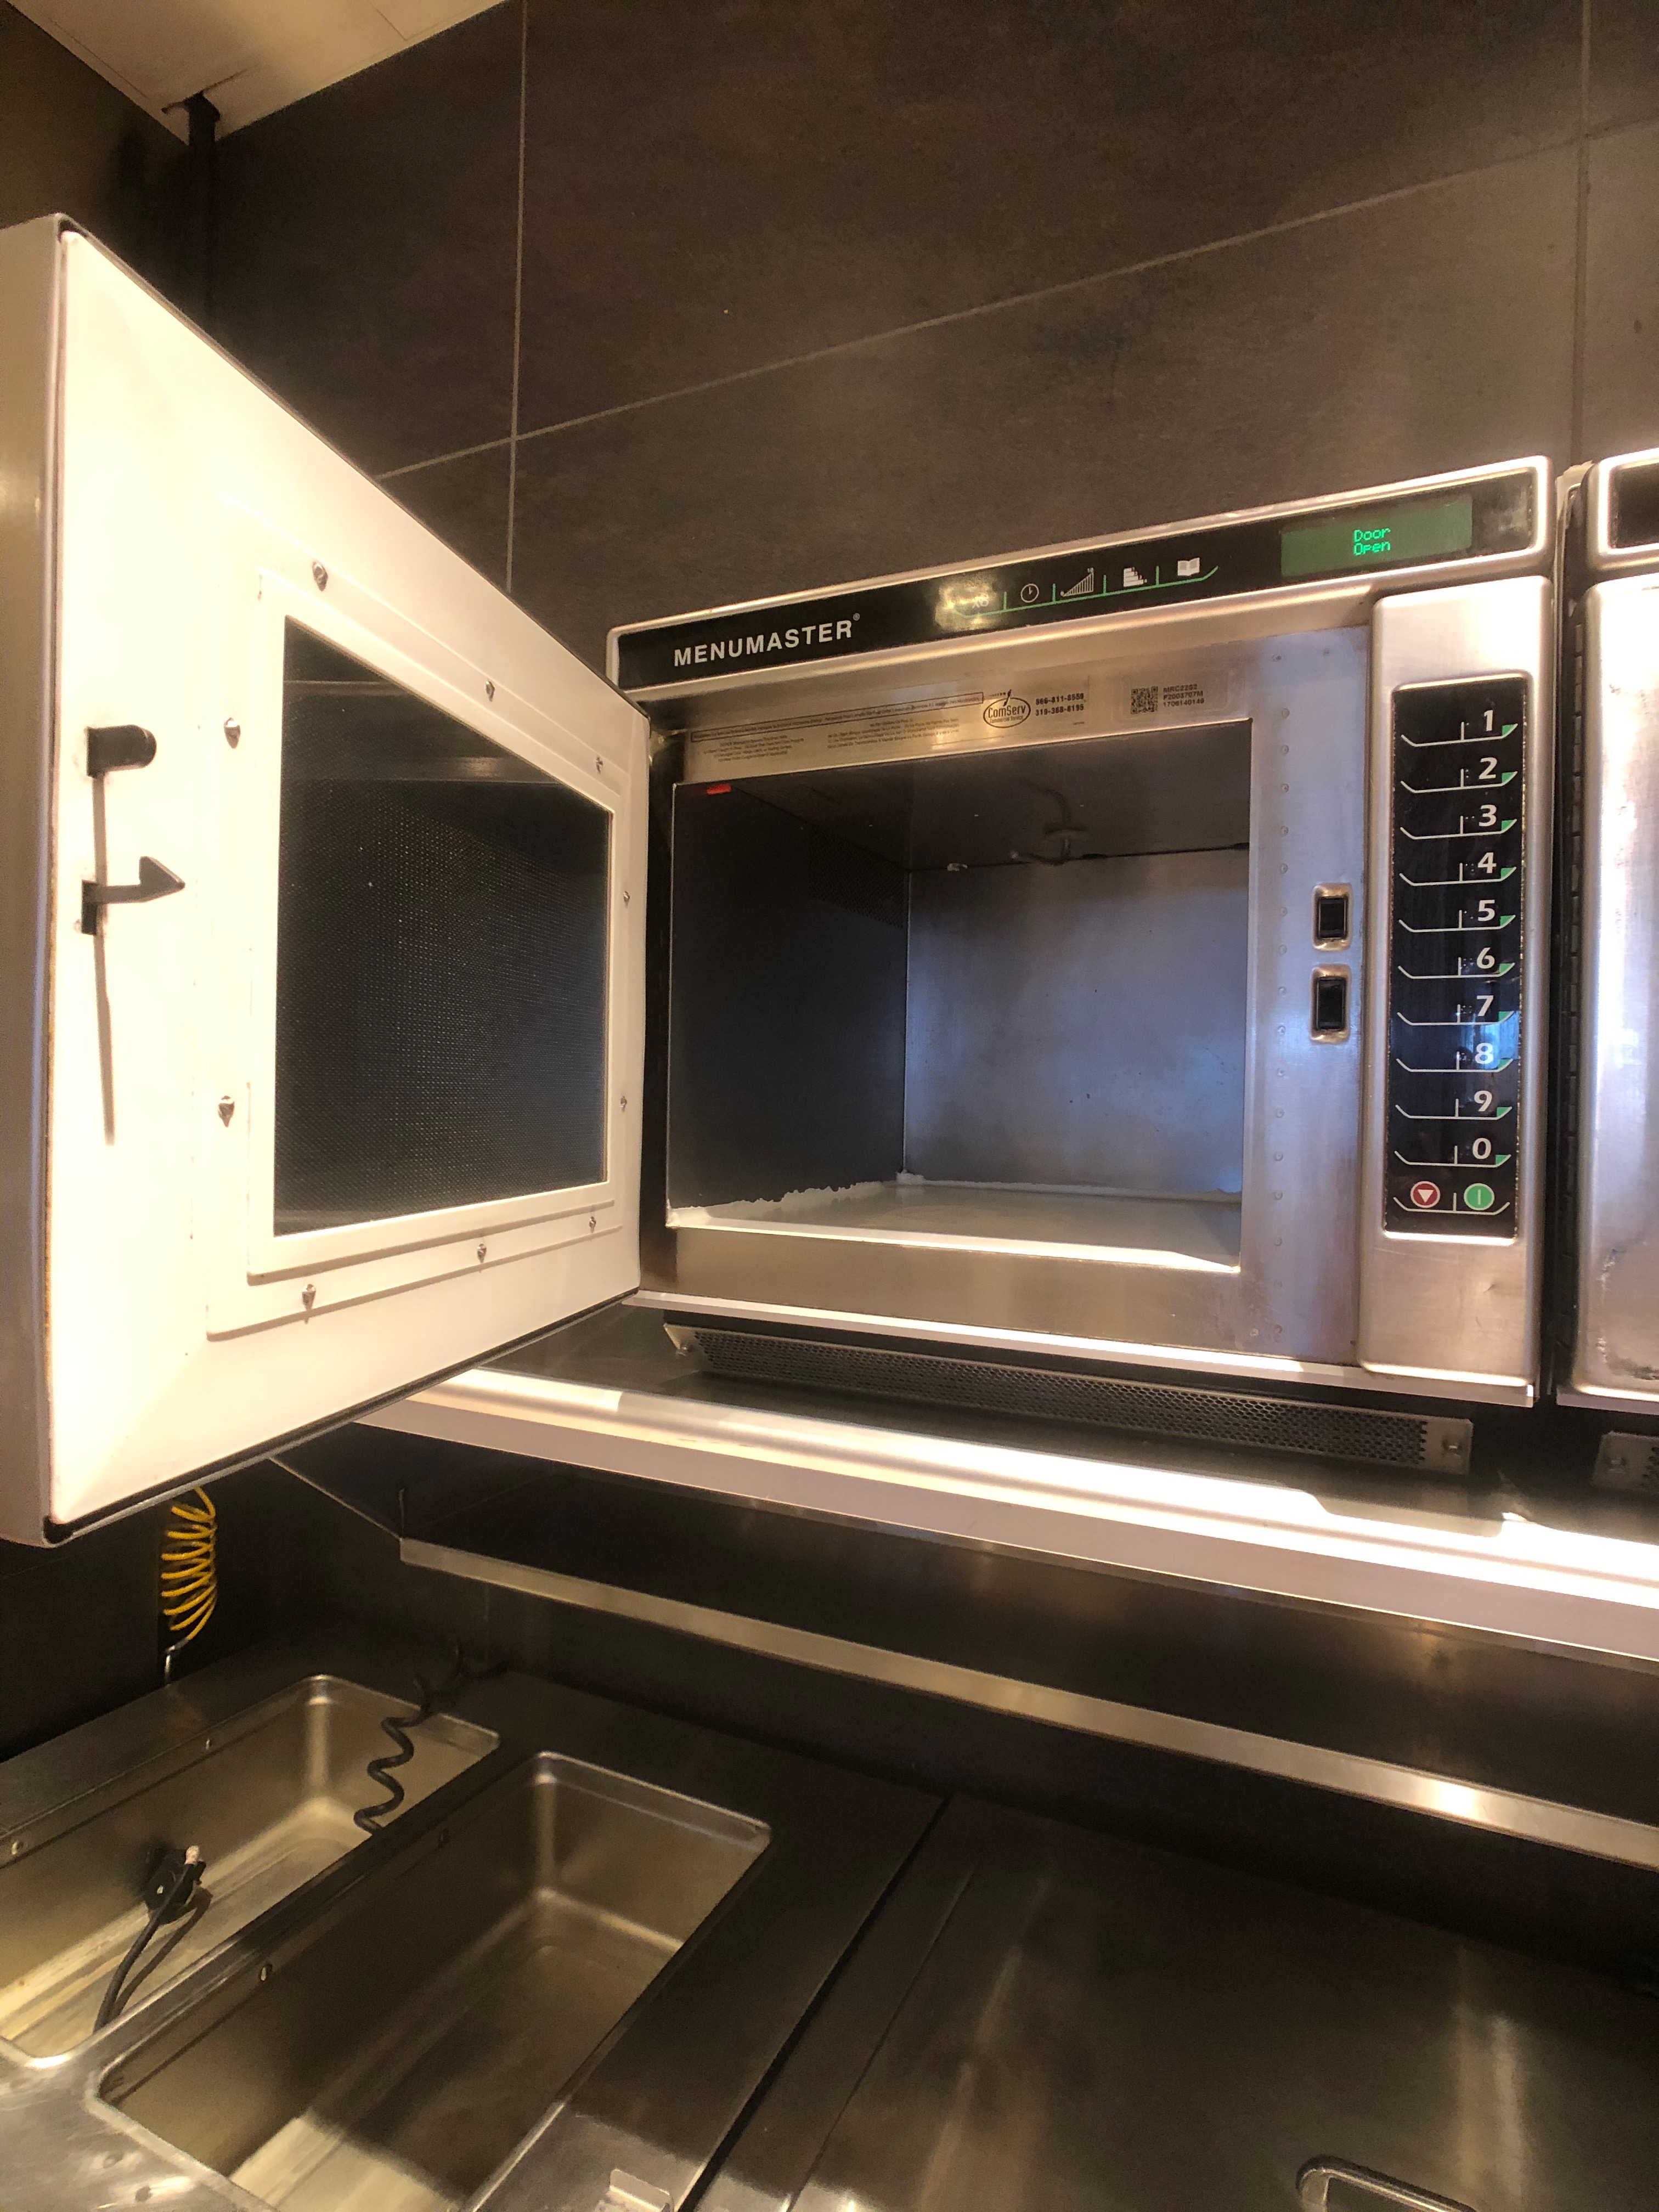 Menumaster Commercial Microwave, Model MRC22S2, 1 CuFt Interior Space, 2200 Power Output - Image 5 of 5